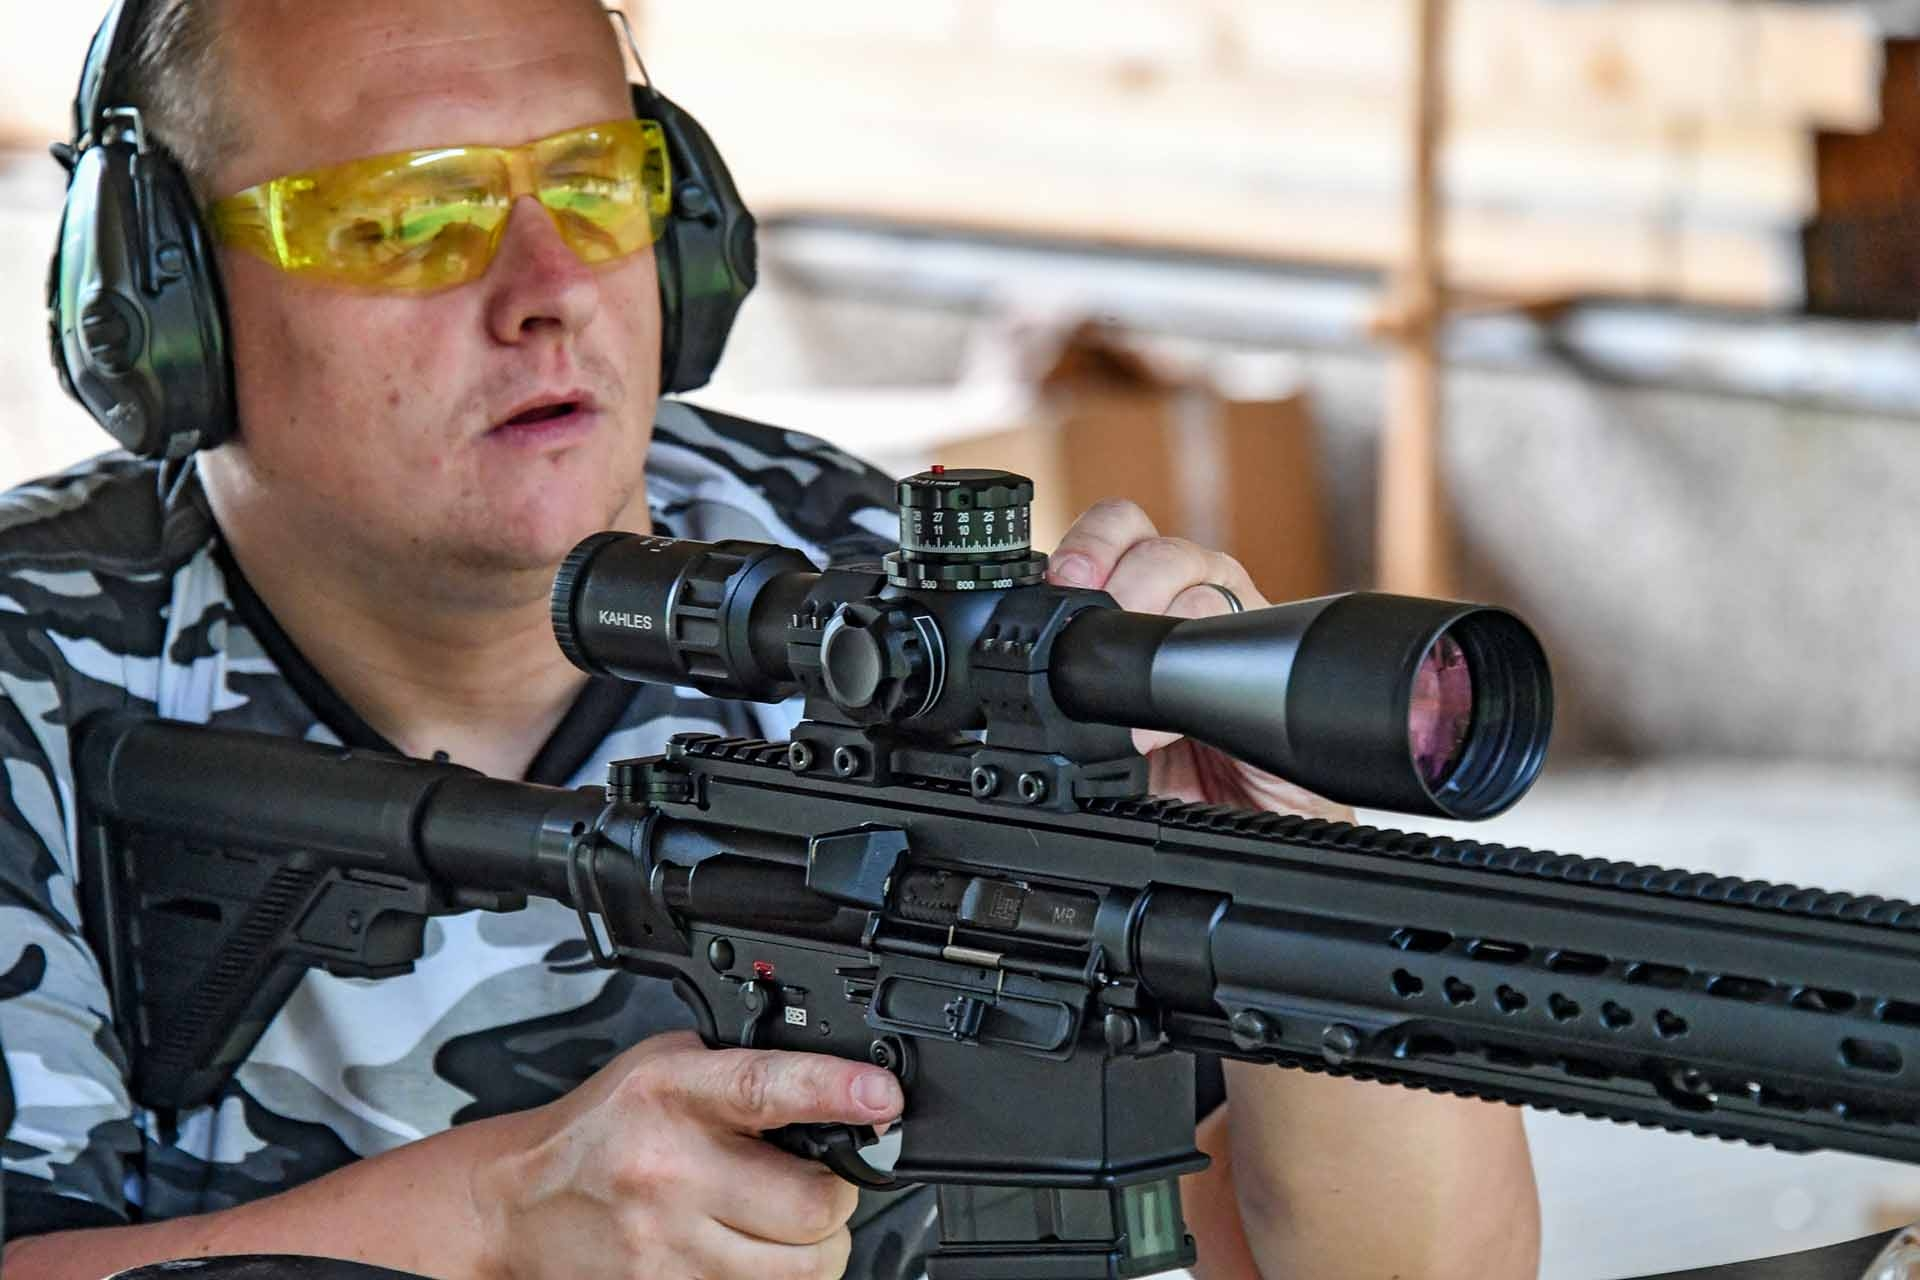 Shooting with the Kahles K525i 5-25x56 tactical riflescope